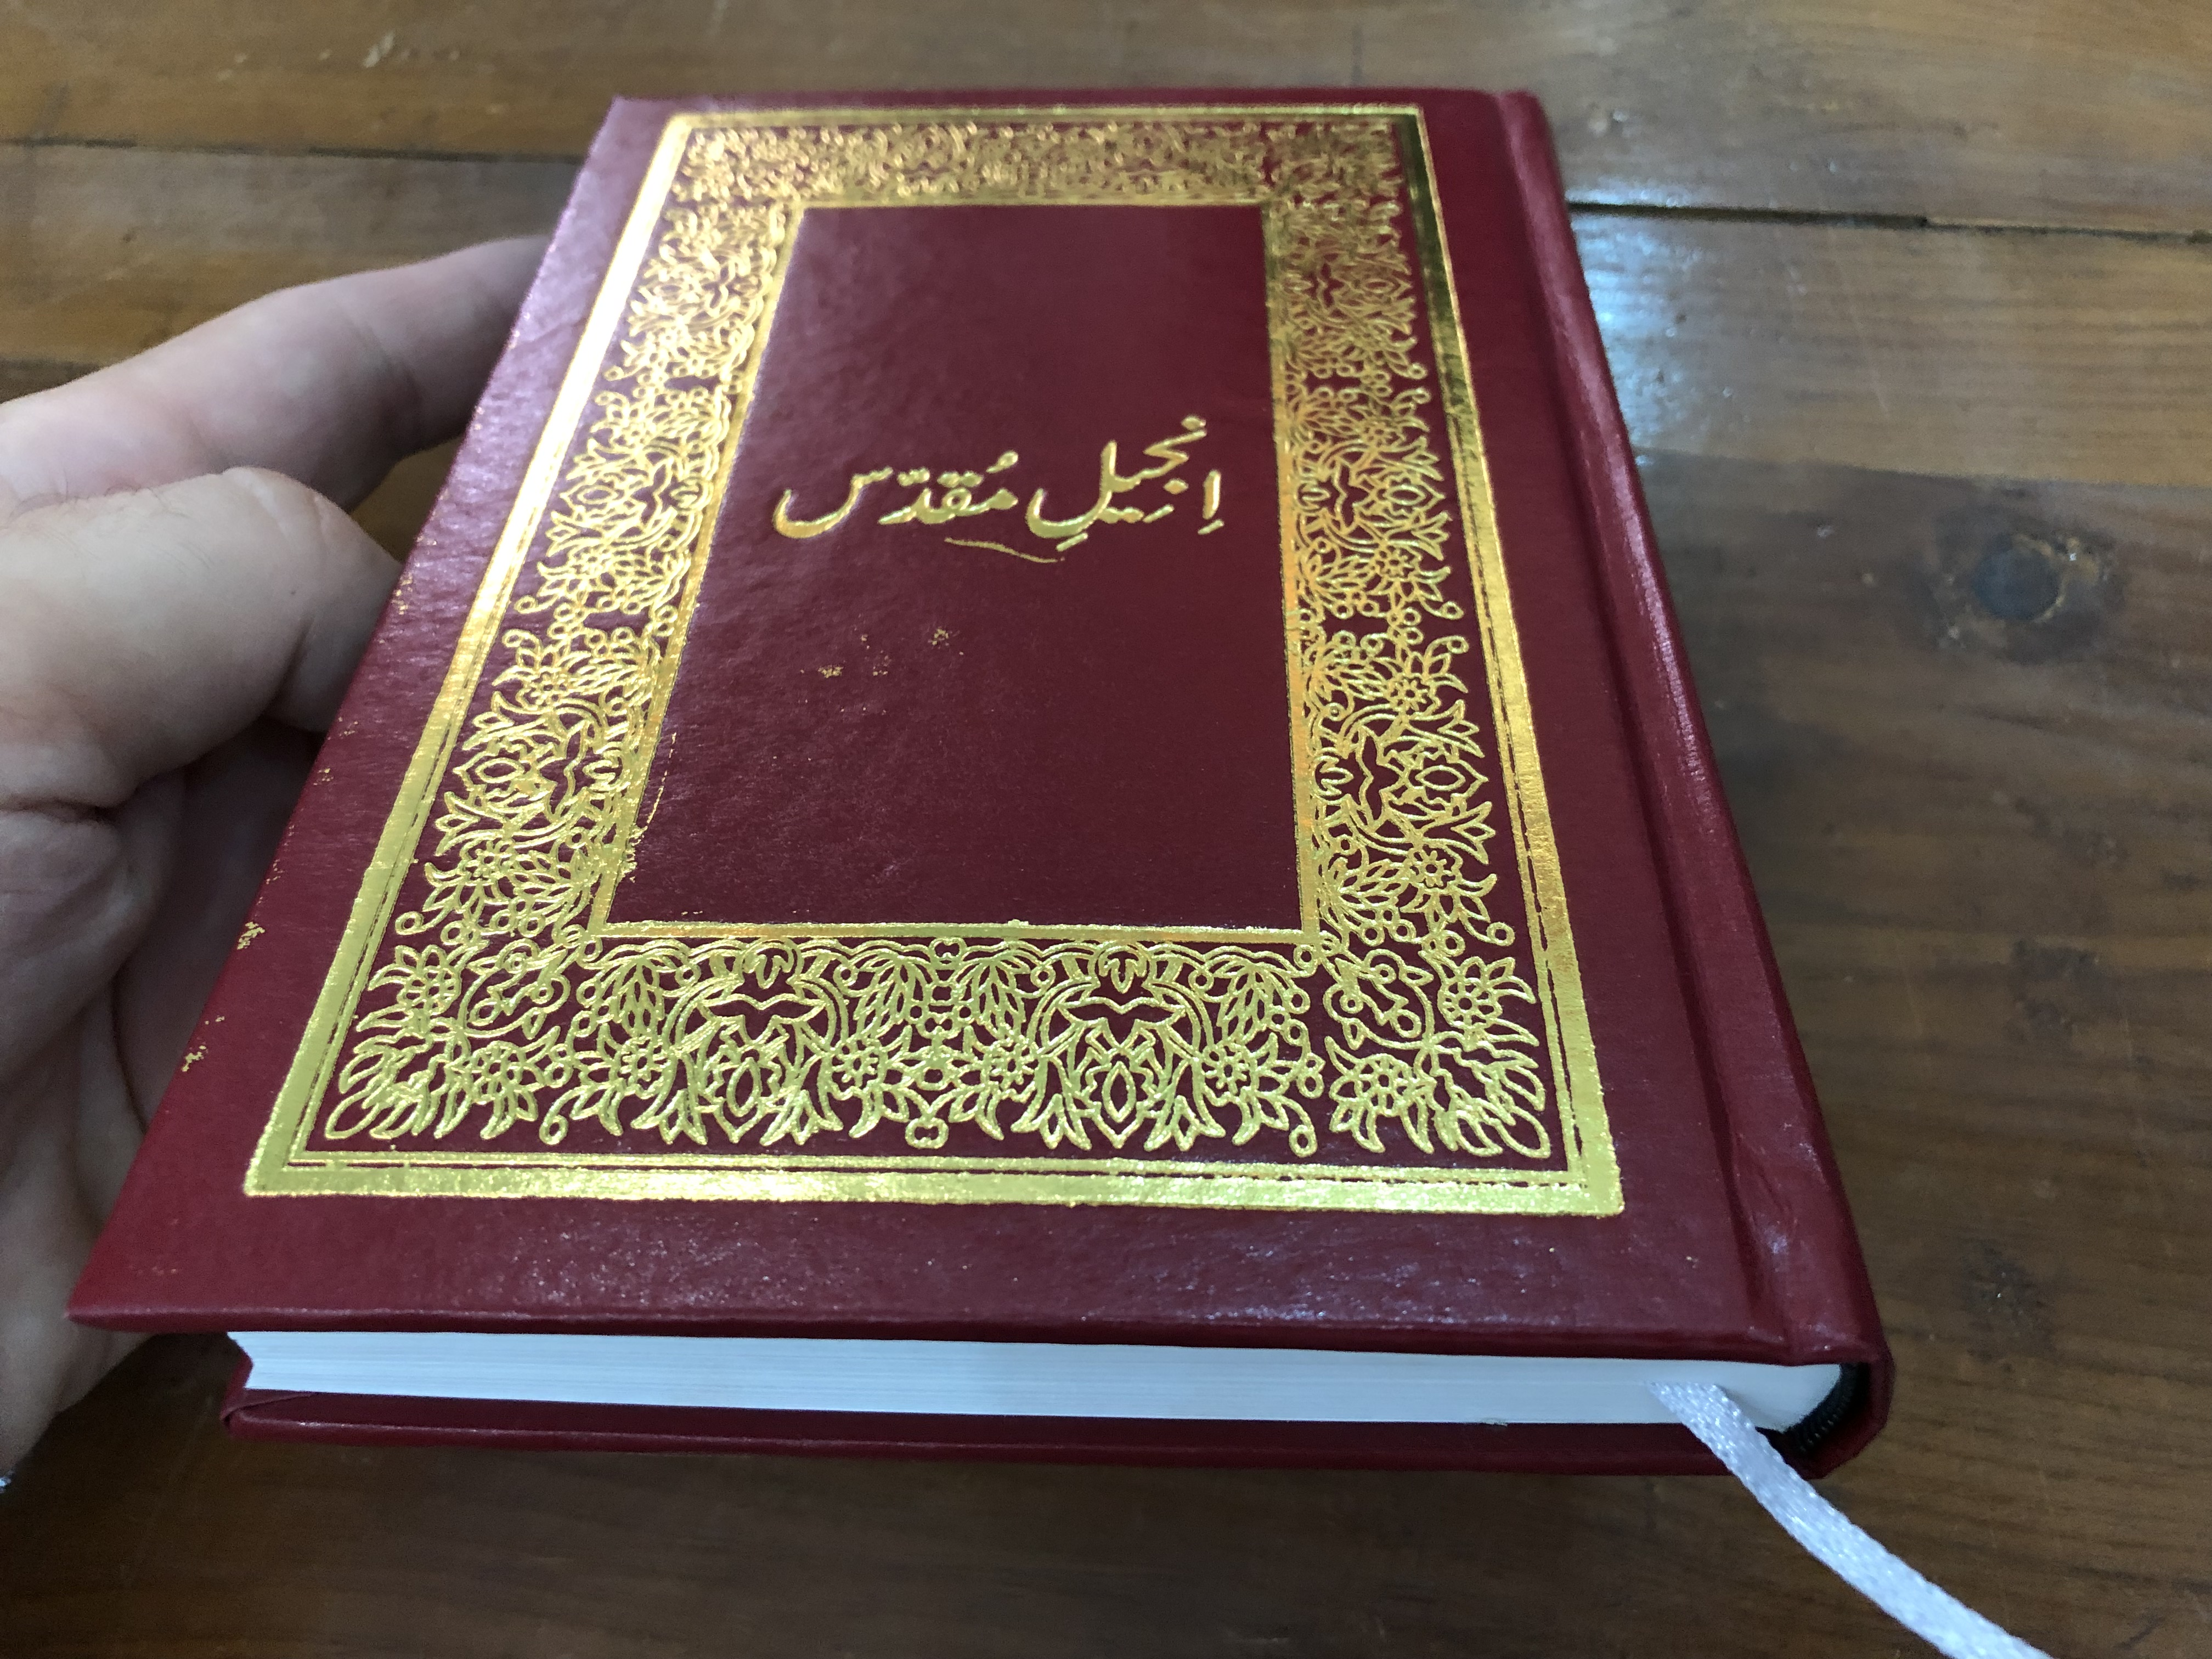 the-new-testament-urdu-pakistan-bible-society-2018-hardcover-burgundy-11-.jpg